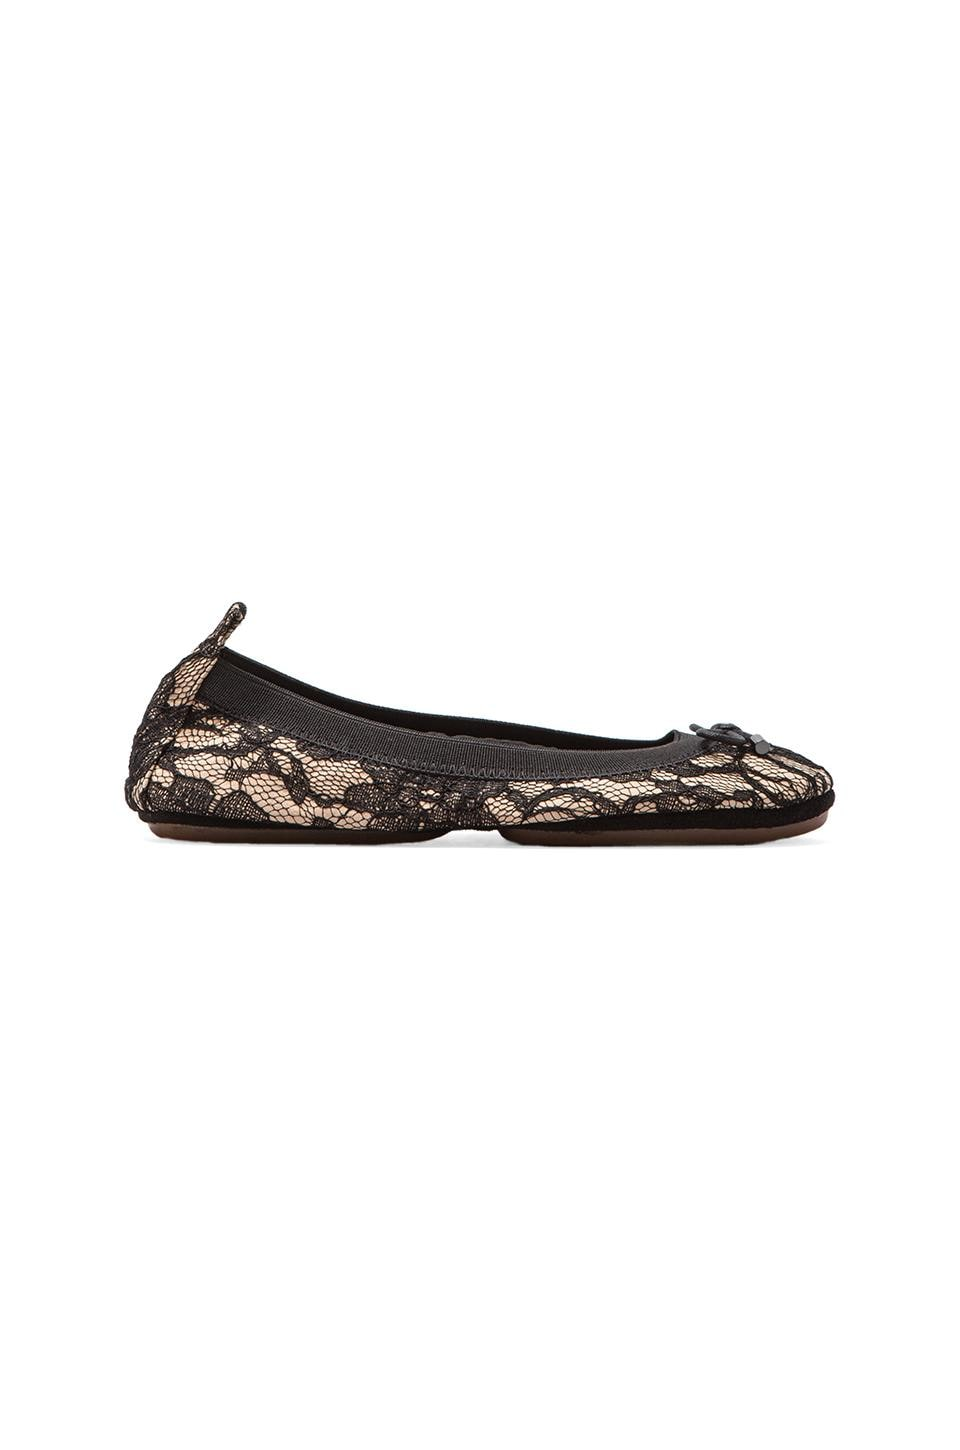 Yosi Samra Leather Blacked Lace Ballet Flat in Buff/Black